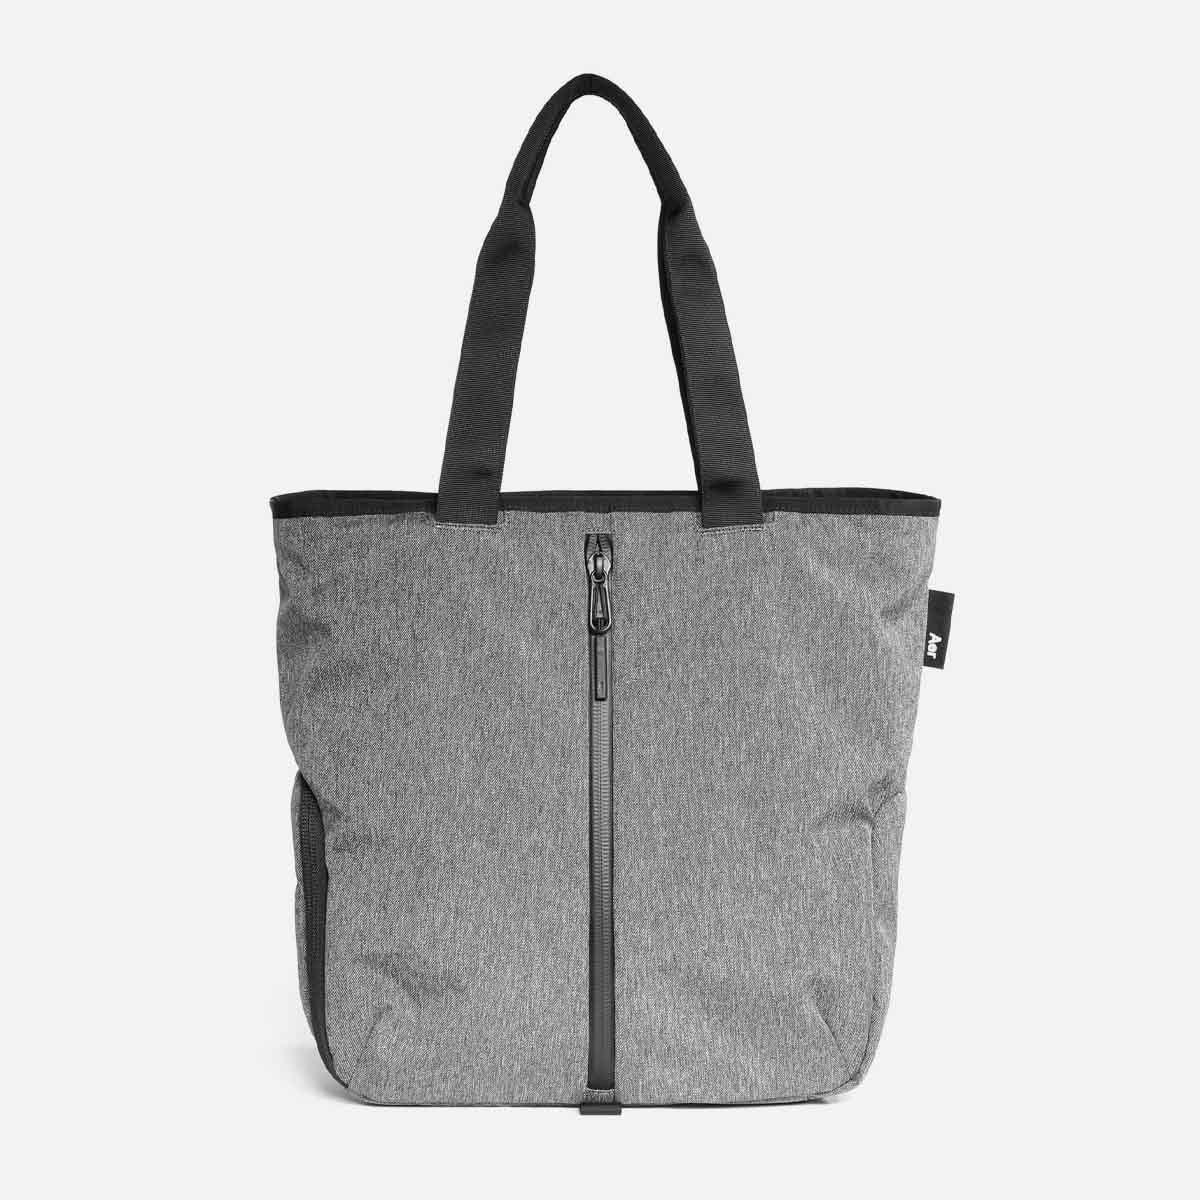 12008_gymtote_gray_front.jpg